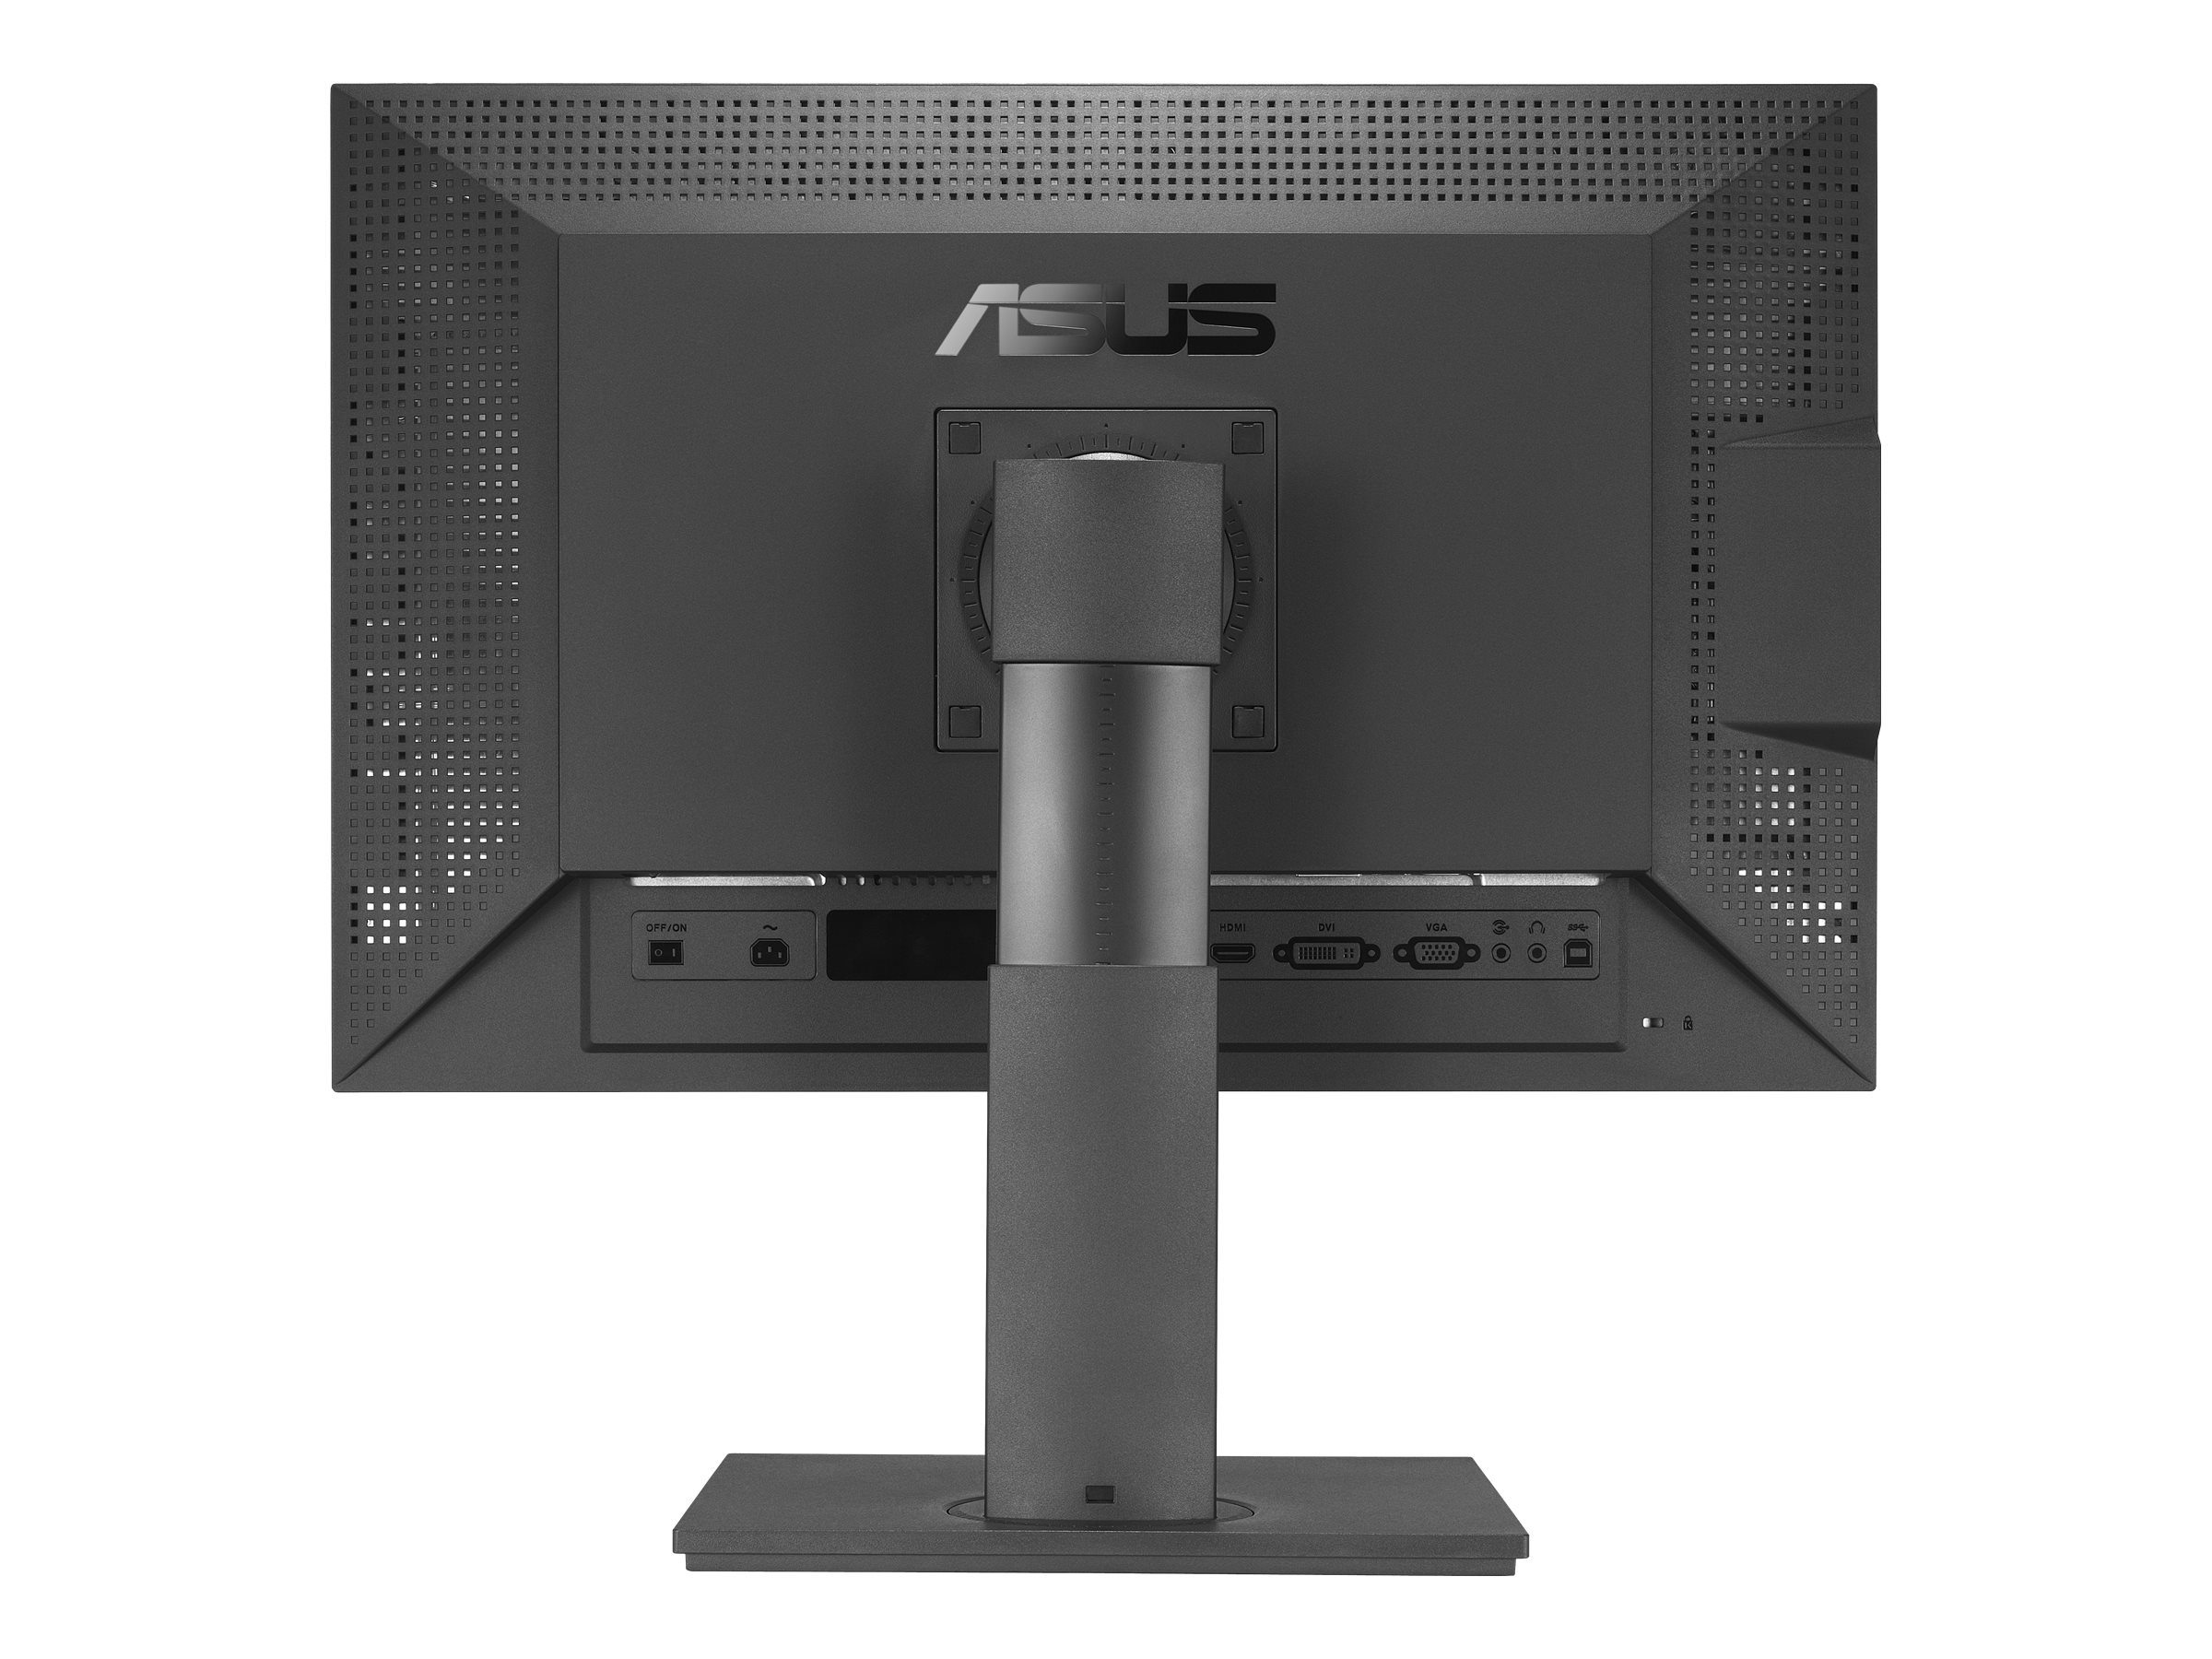 Asus 24 PA248Q Widescreen LED-LCD Monitor, Black